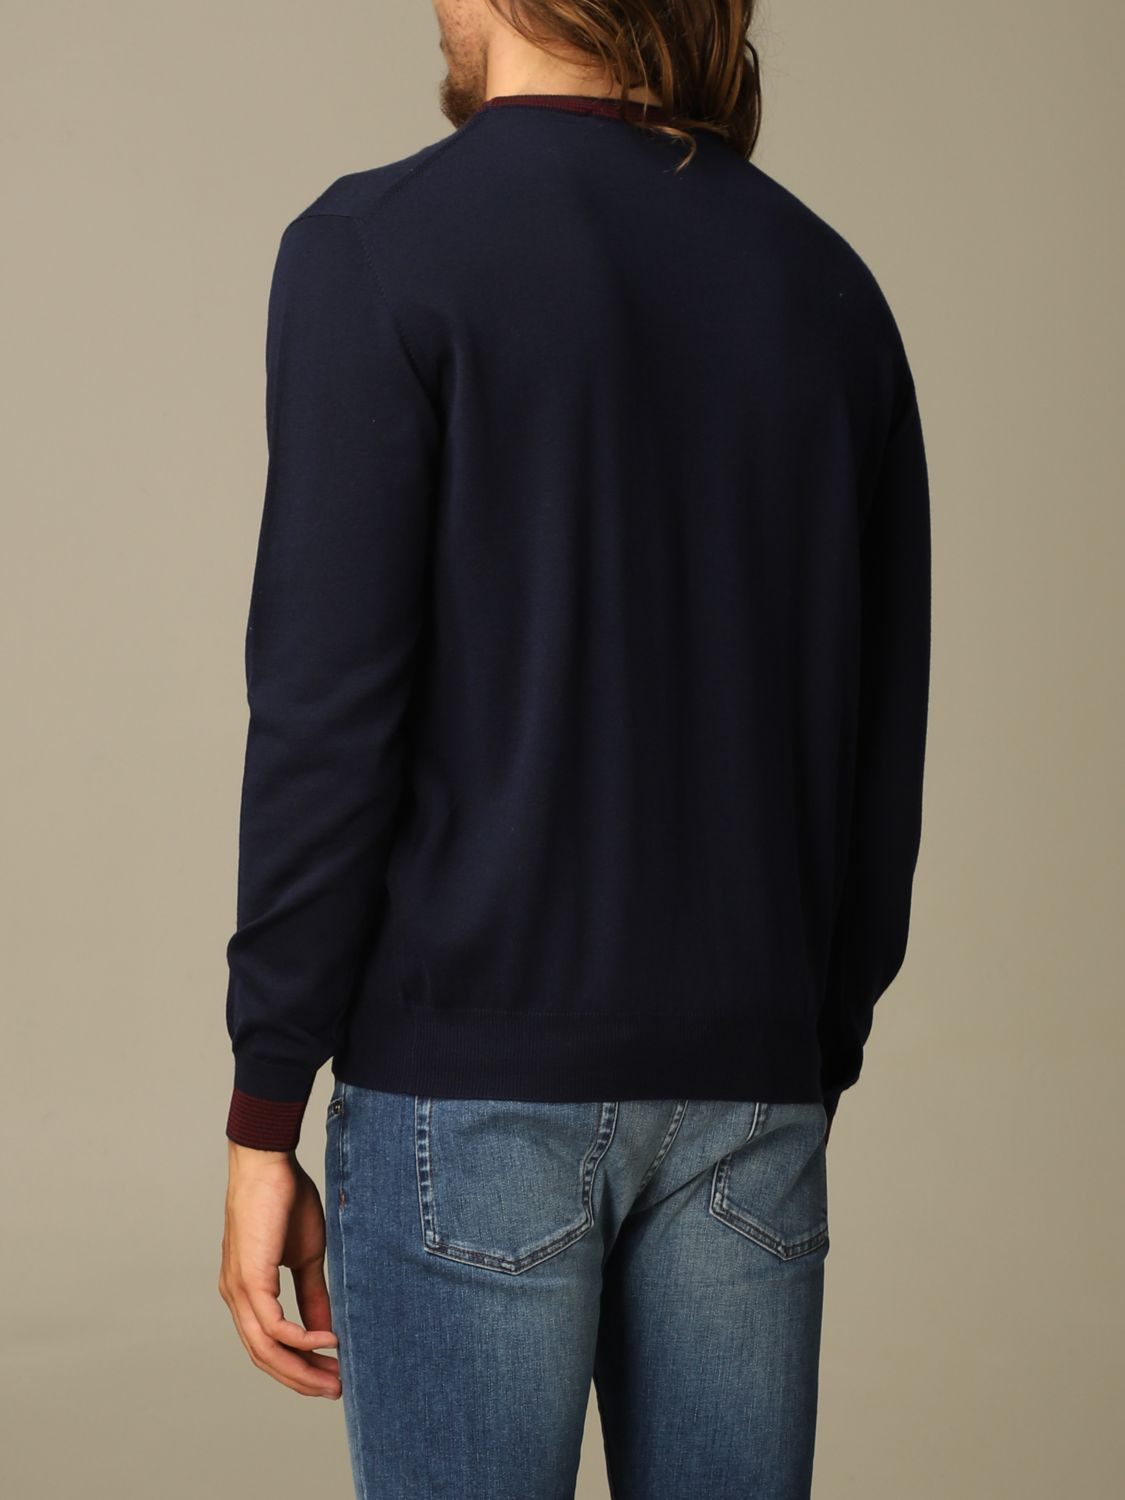 Sweater Etro: Etro wool sweater with embroidered Pegasus navy 2